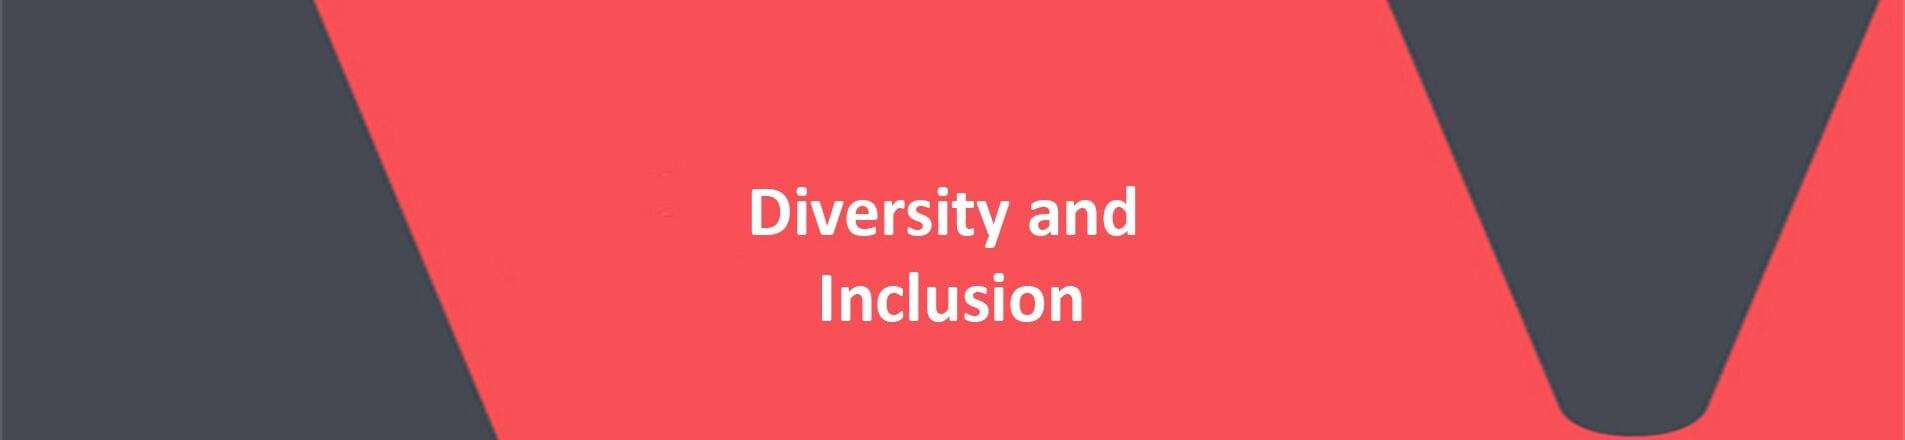 Red background with white text overlaid spelling Diversity and Inclusion.